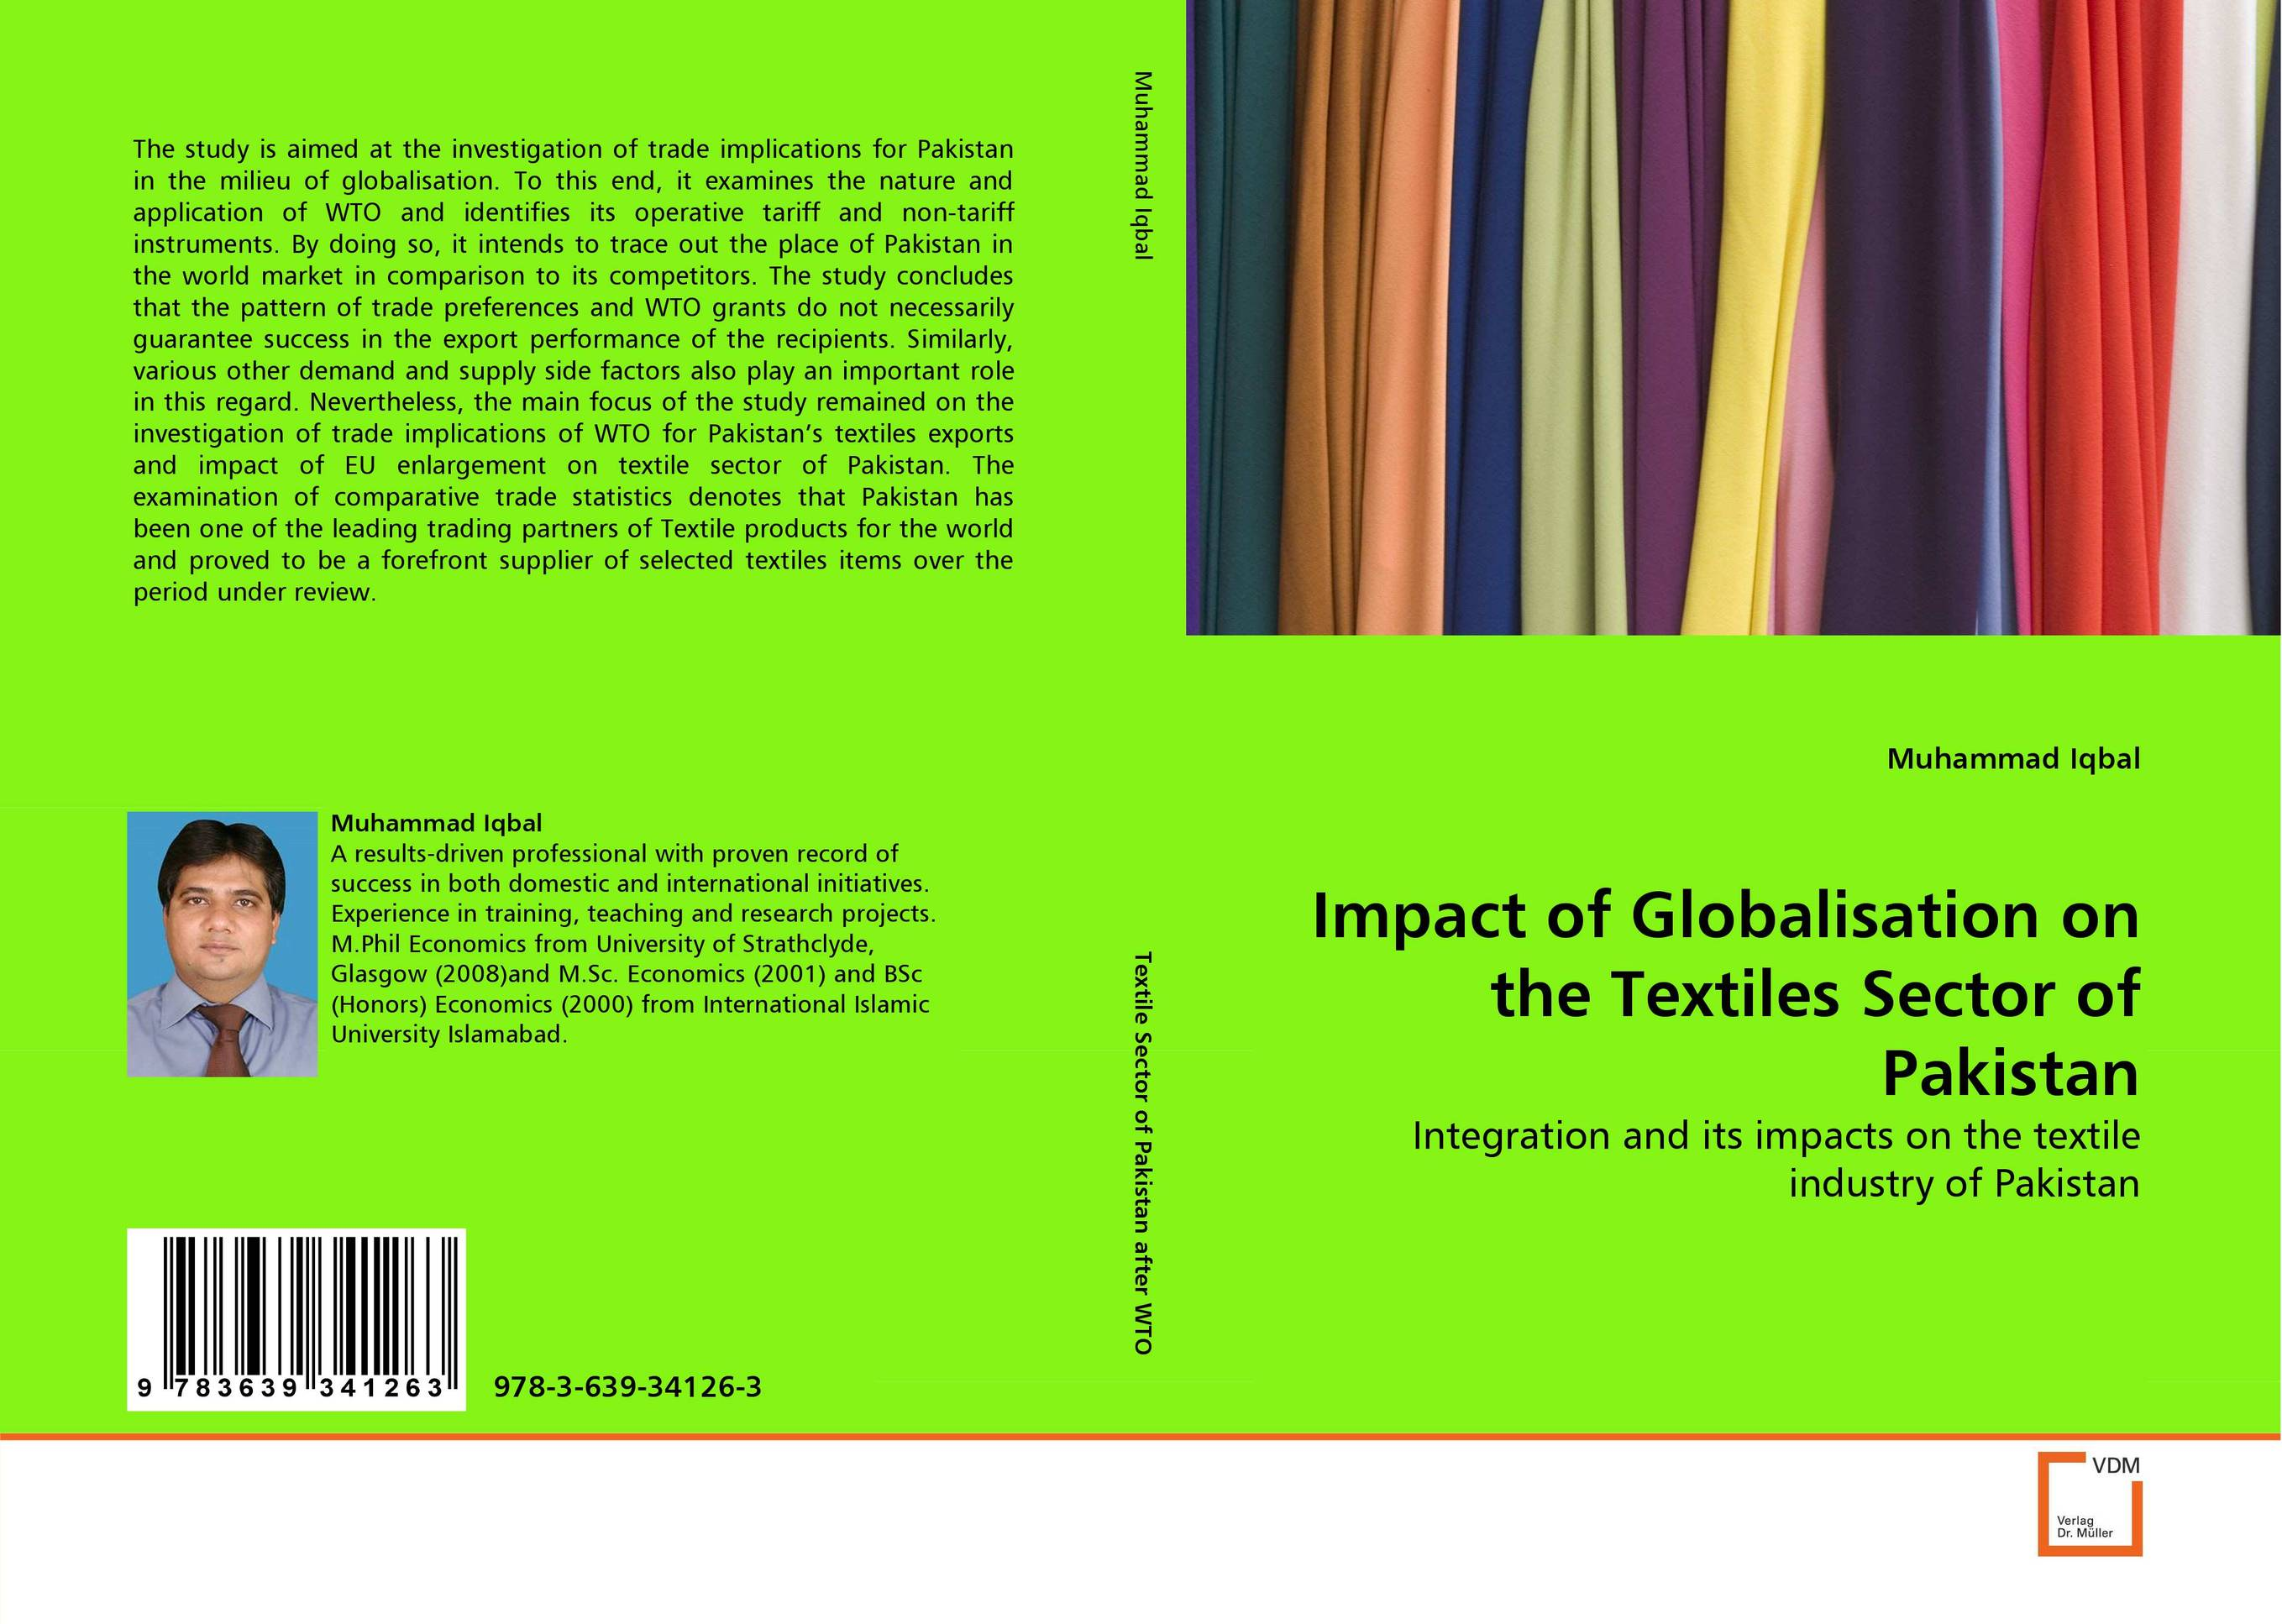 Impact of Globalisation on the Textiles Sector of Pakistan textiles of the islamic world